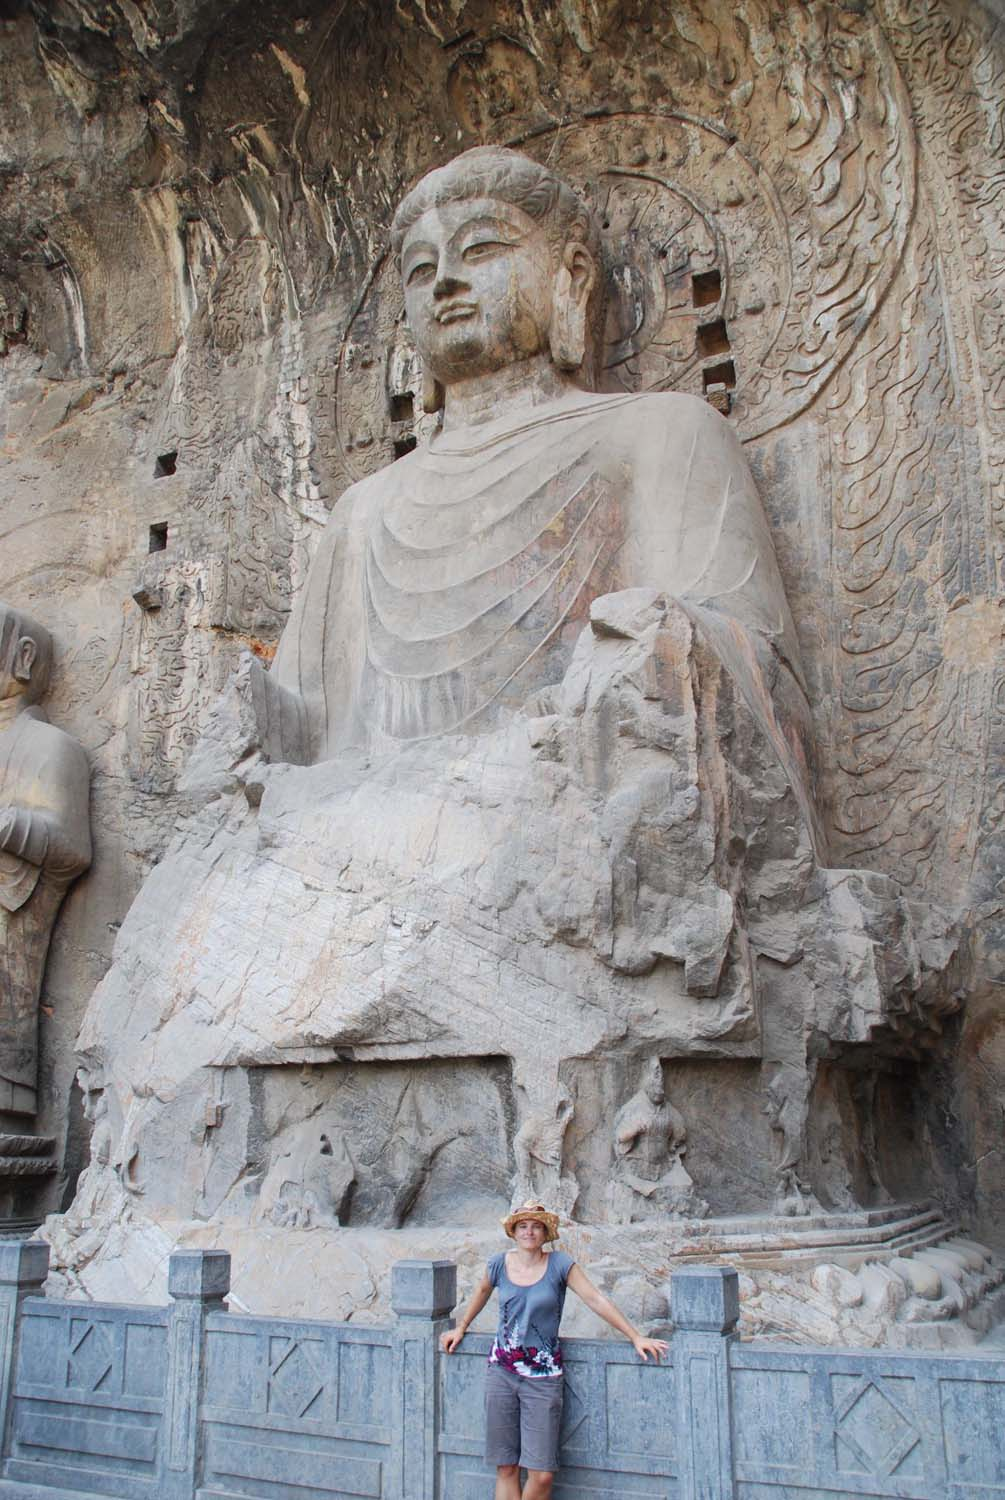 some Buddhas were not damaged or have already been partly restored